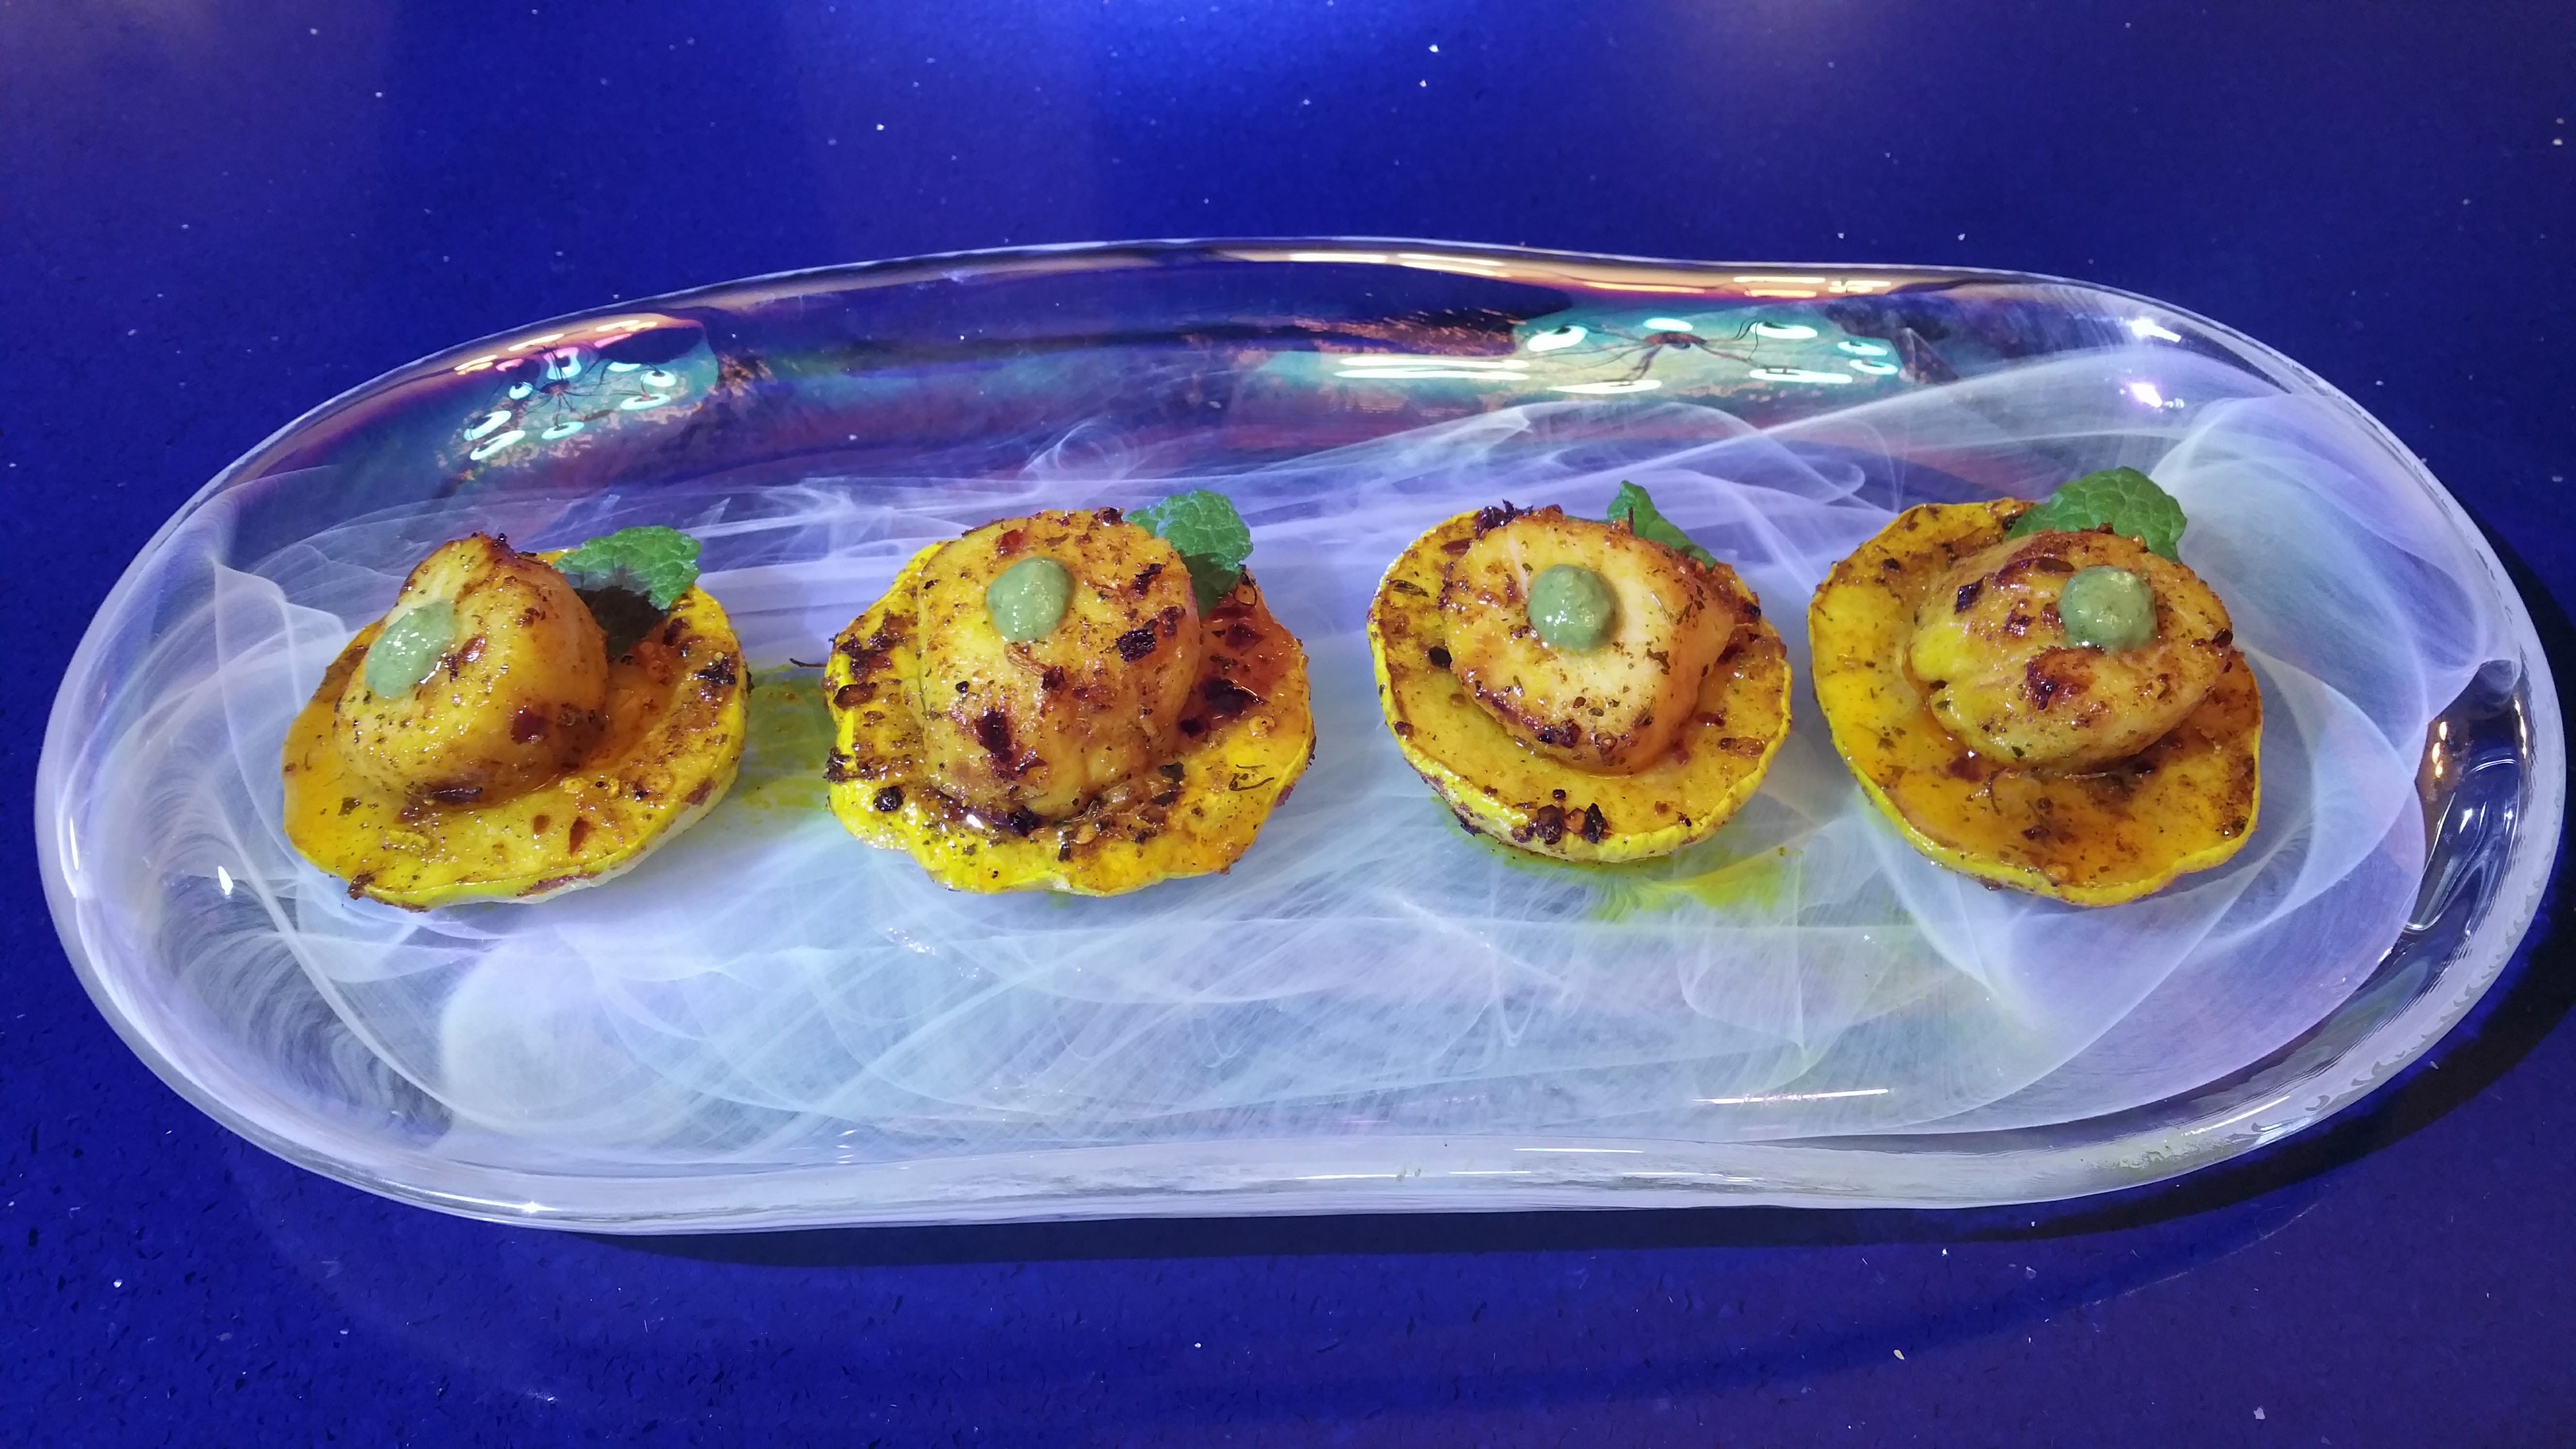 Scallops and Squash Feature